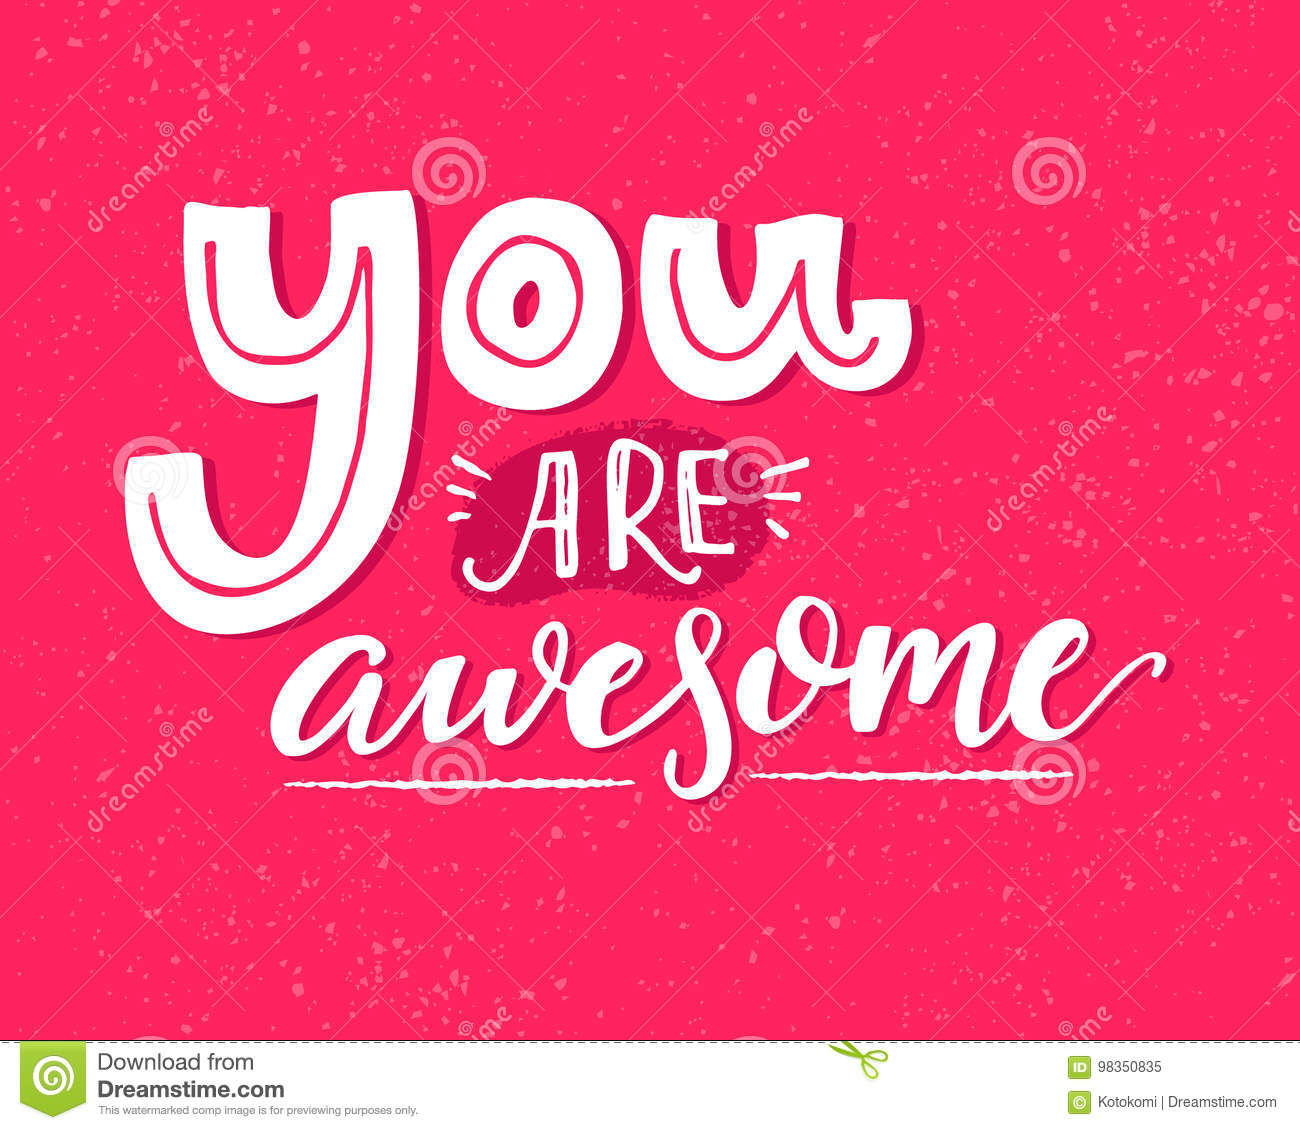 You are awesome motivational saying inspirational quote design motivational saying inspirational quote design for greeting cards white words on pink vector kristyandbryce Choice Image